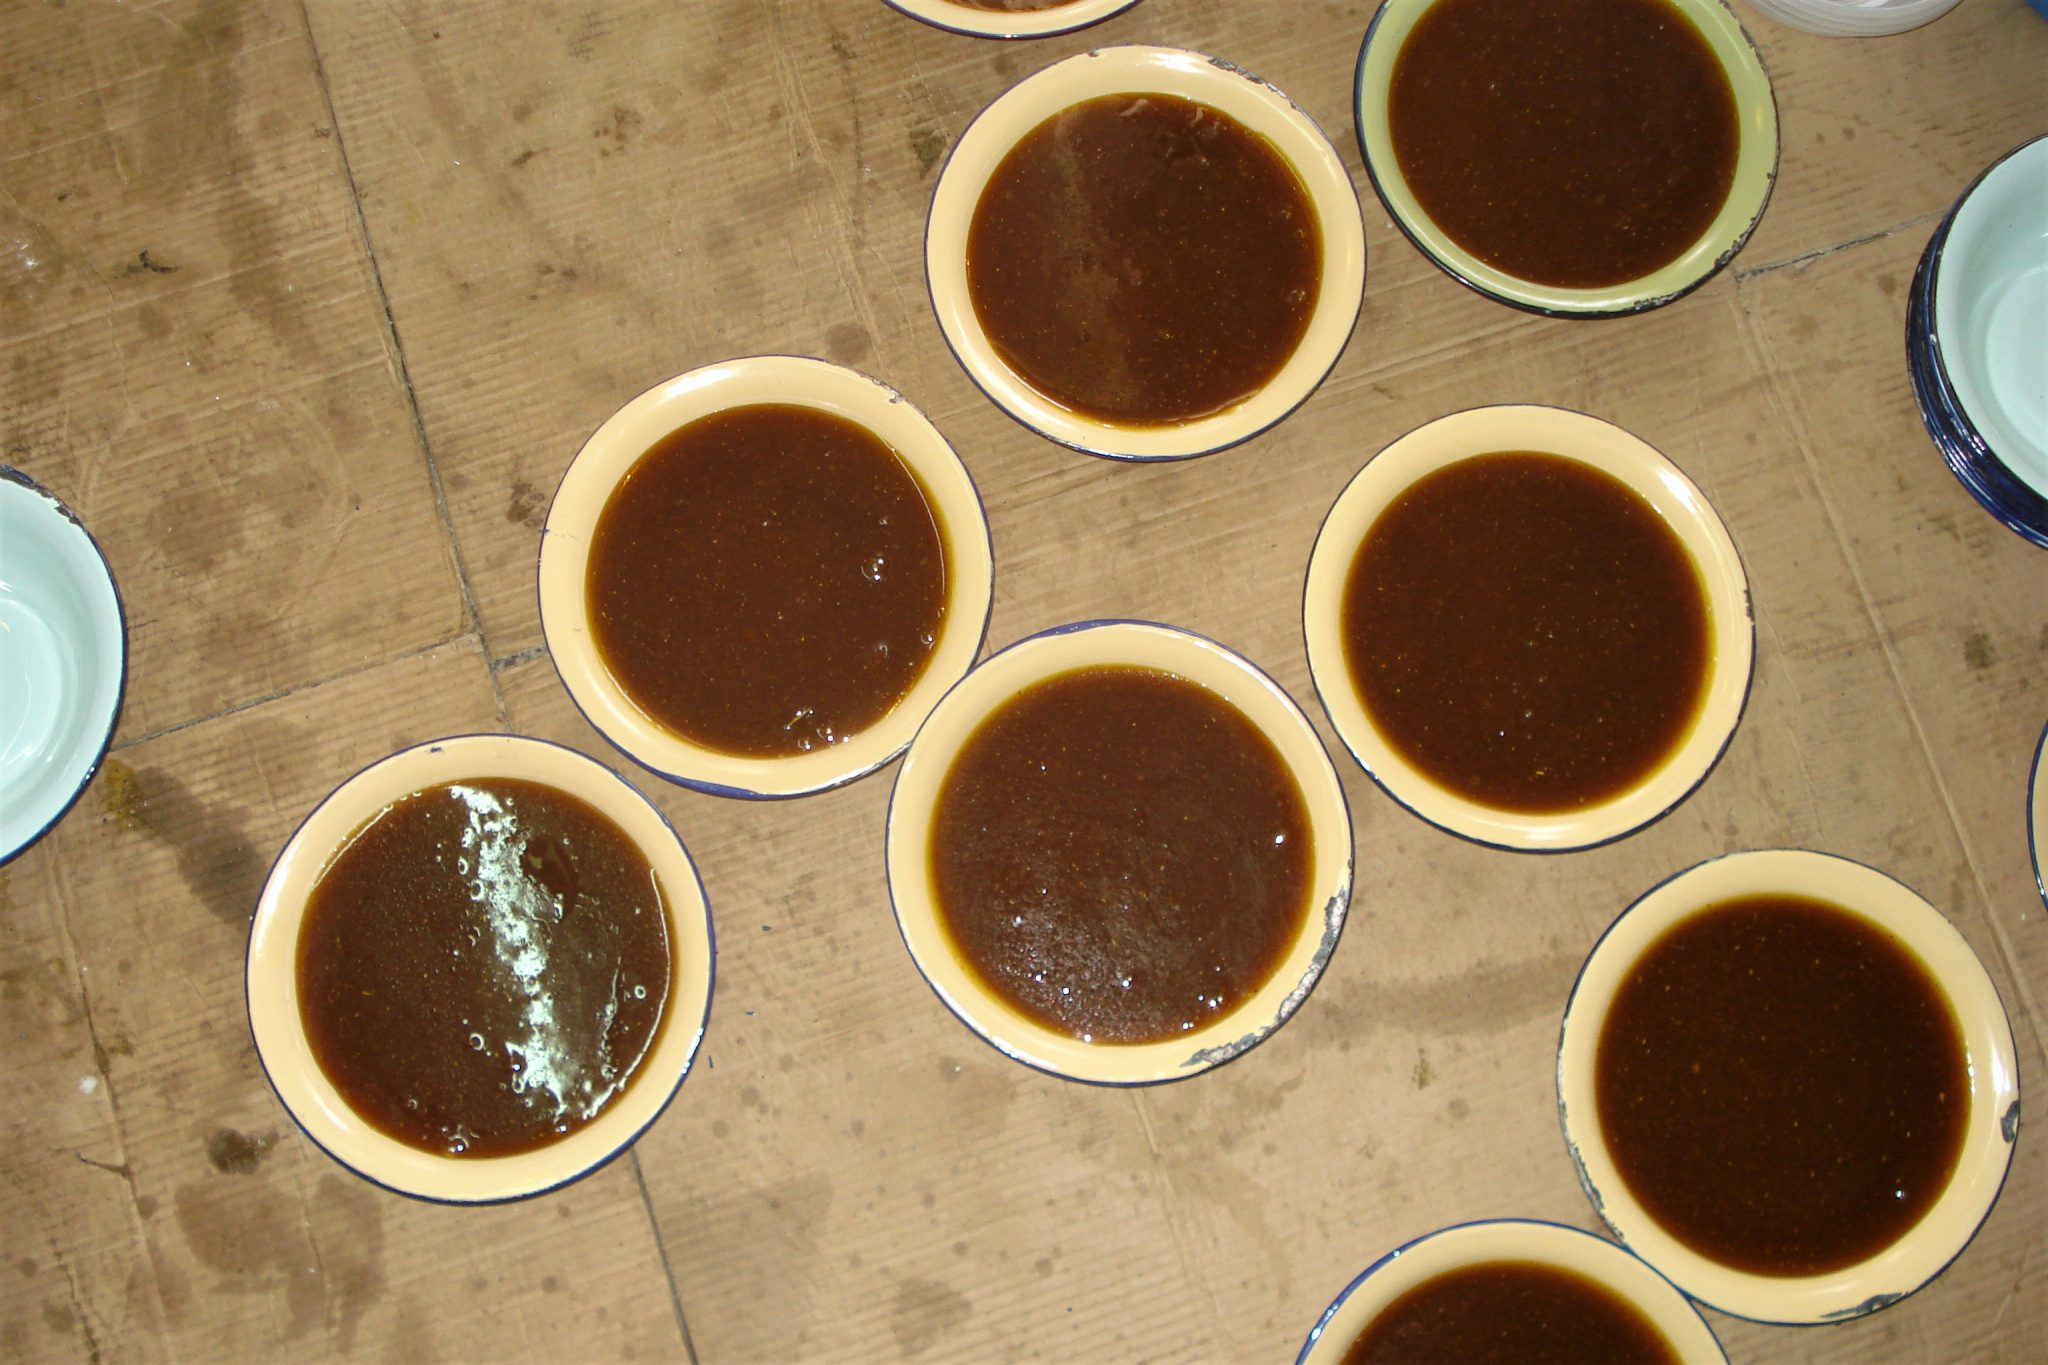 Eight ceramic bowls on the floor, filled with fresh, hot Omani halwa.